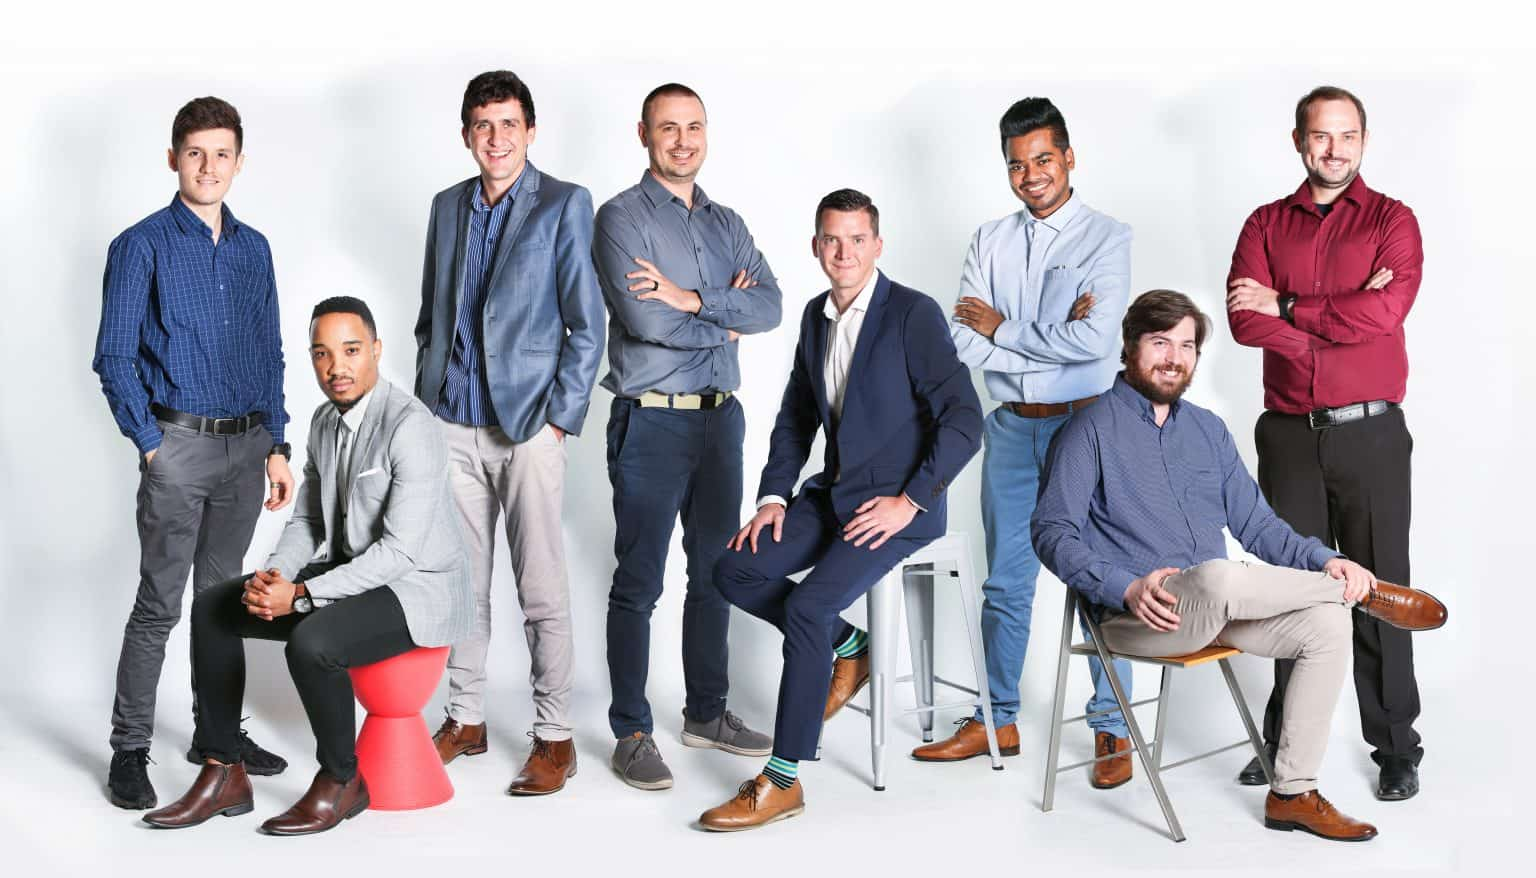 1ai-RPA-Robotic-Process-Automation-South-Africa-team1536x878